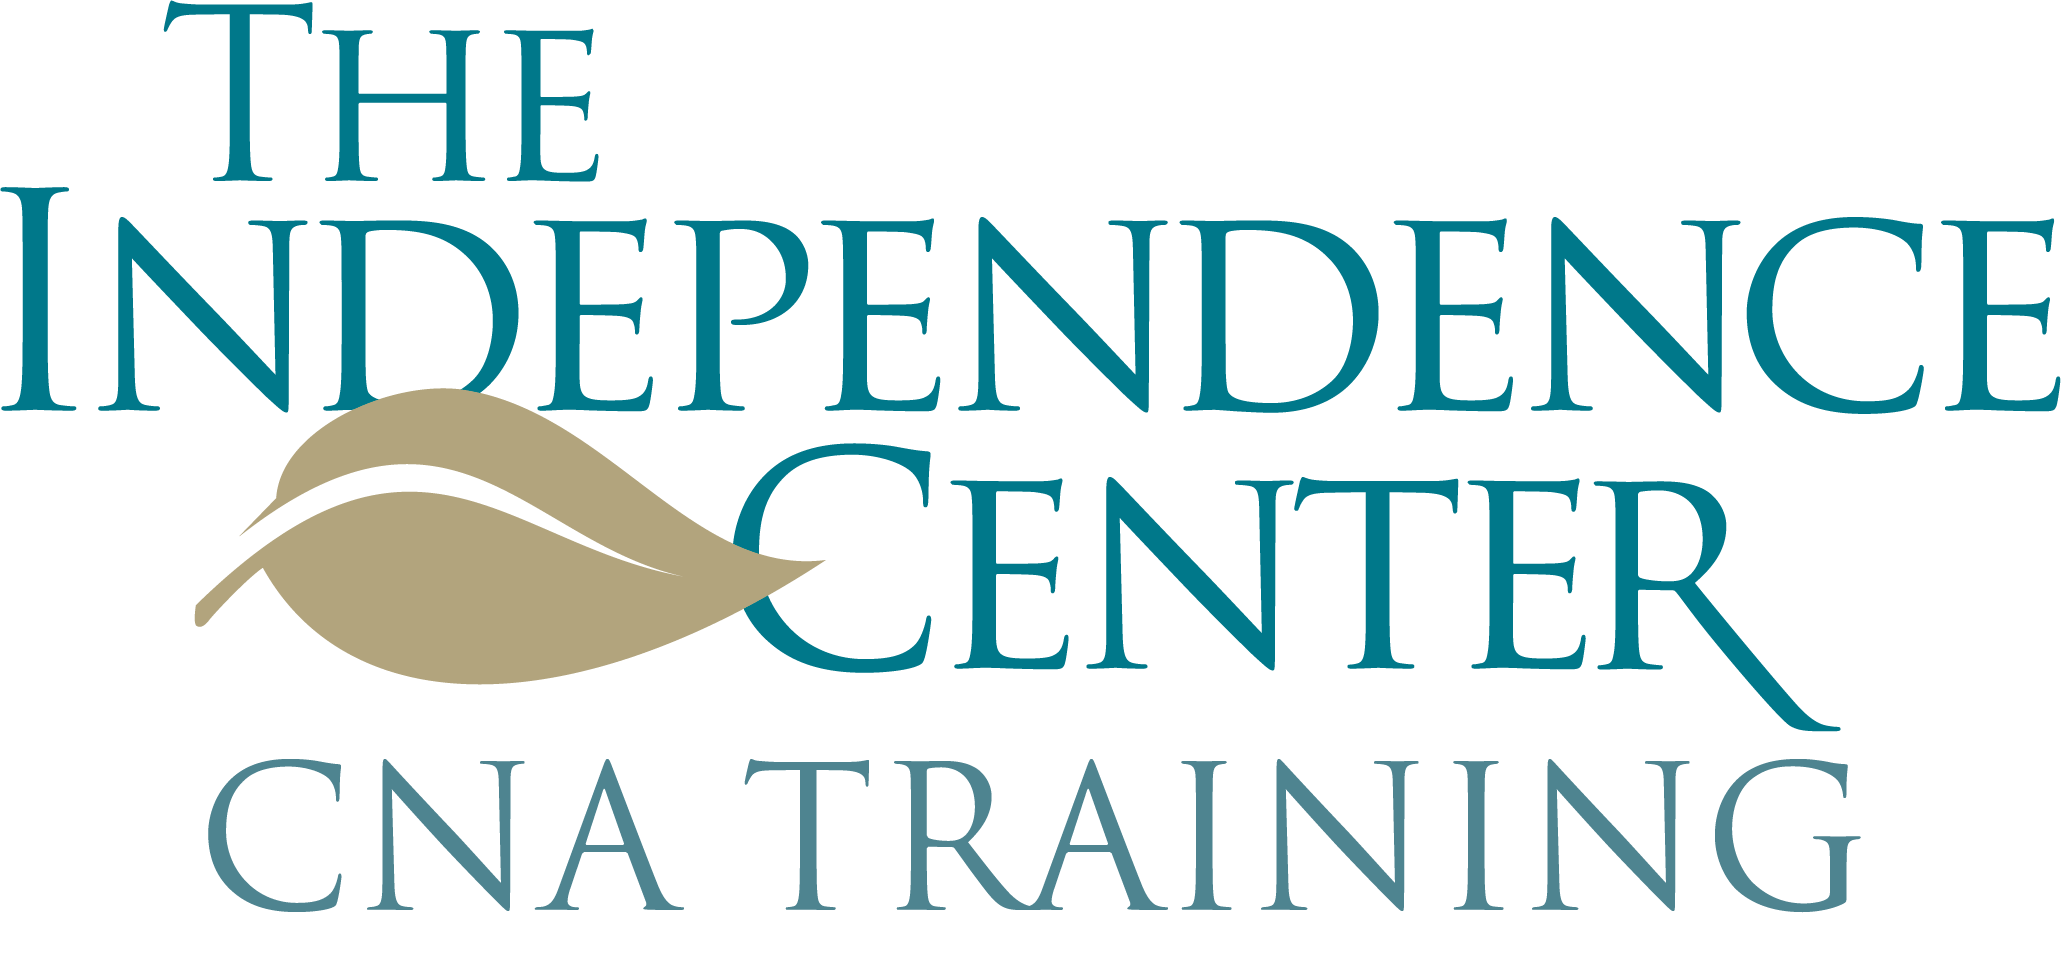 Cna training program independence center cna training program logo xflitez Gallery